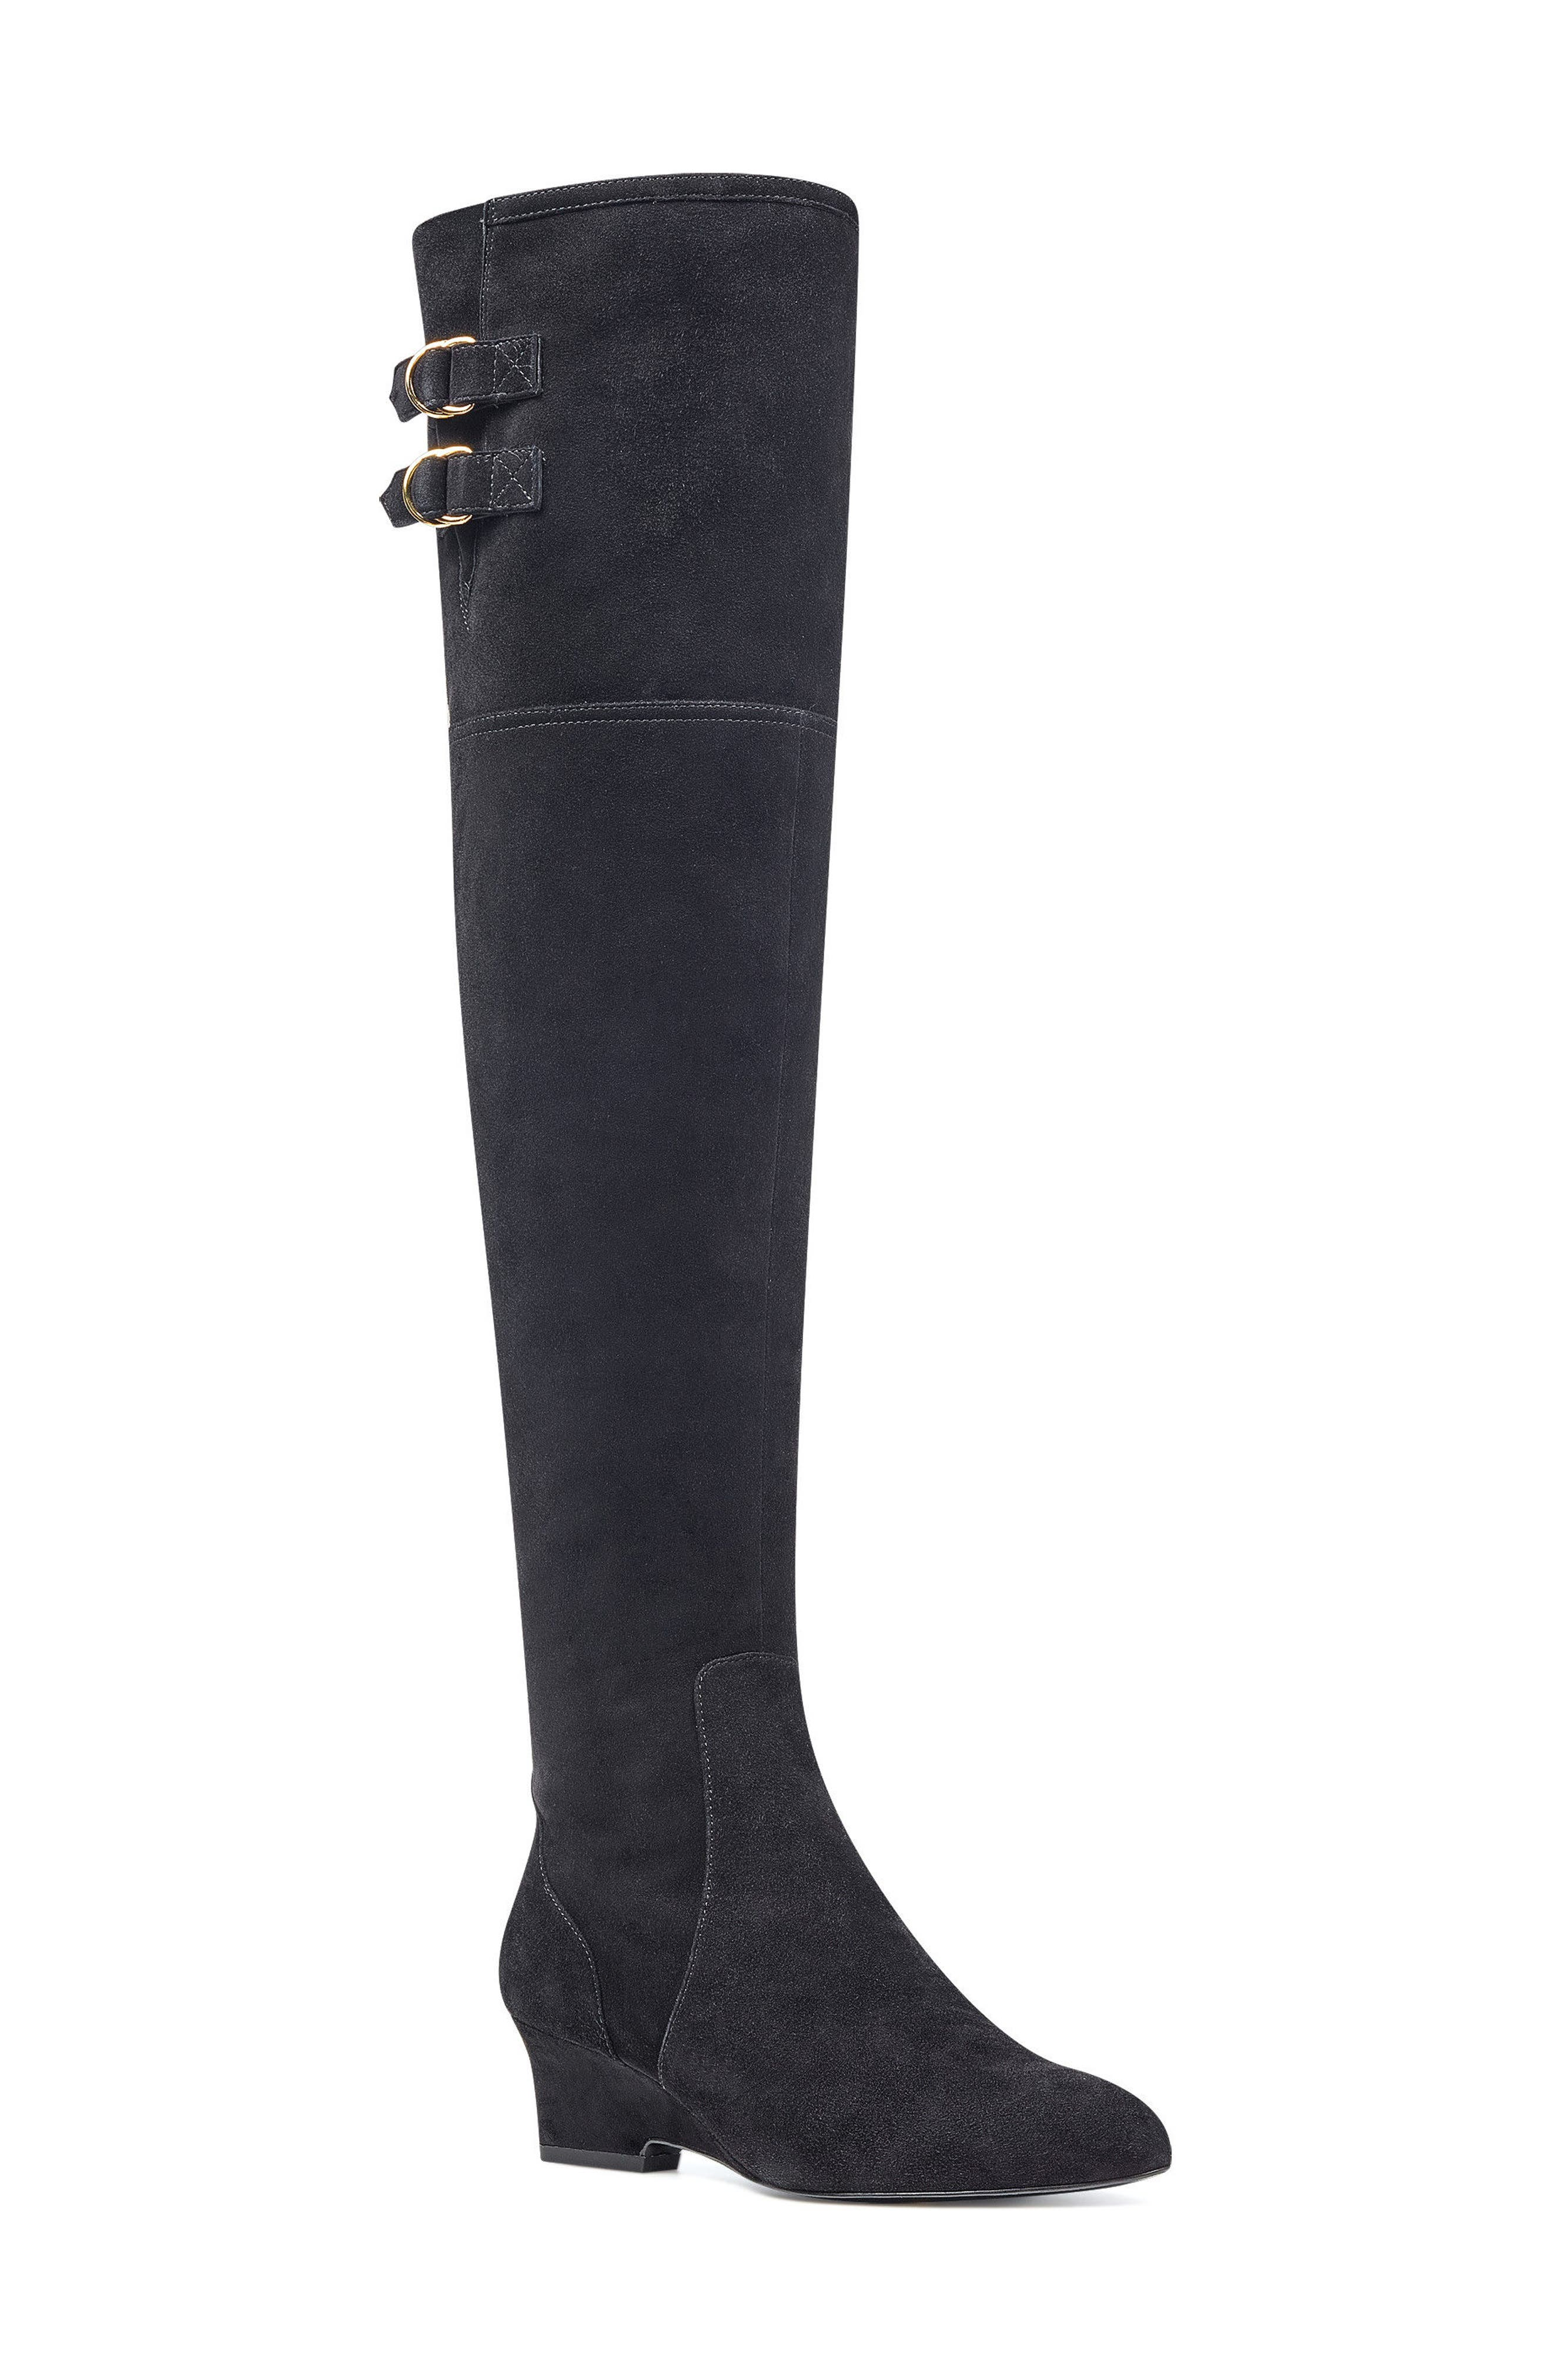 NINE WEST Jaen Over the Knee Boot, Main, color, 001